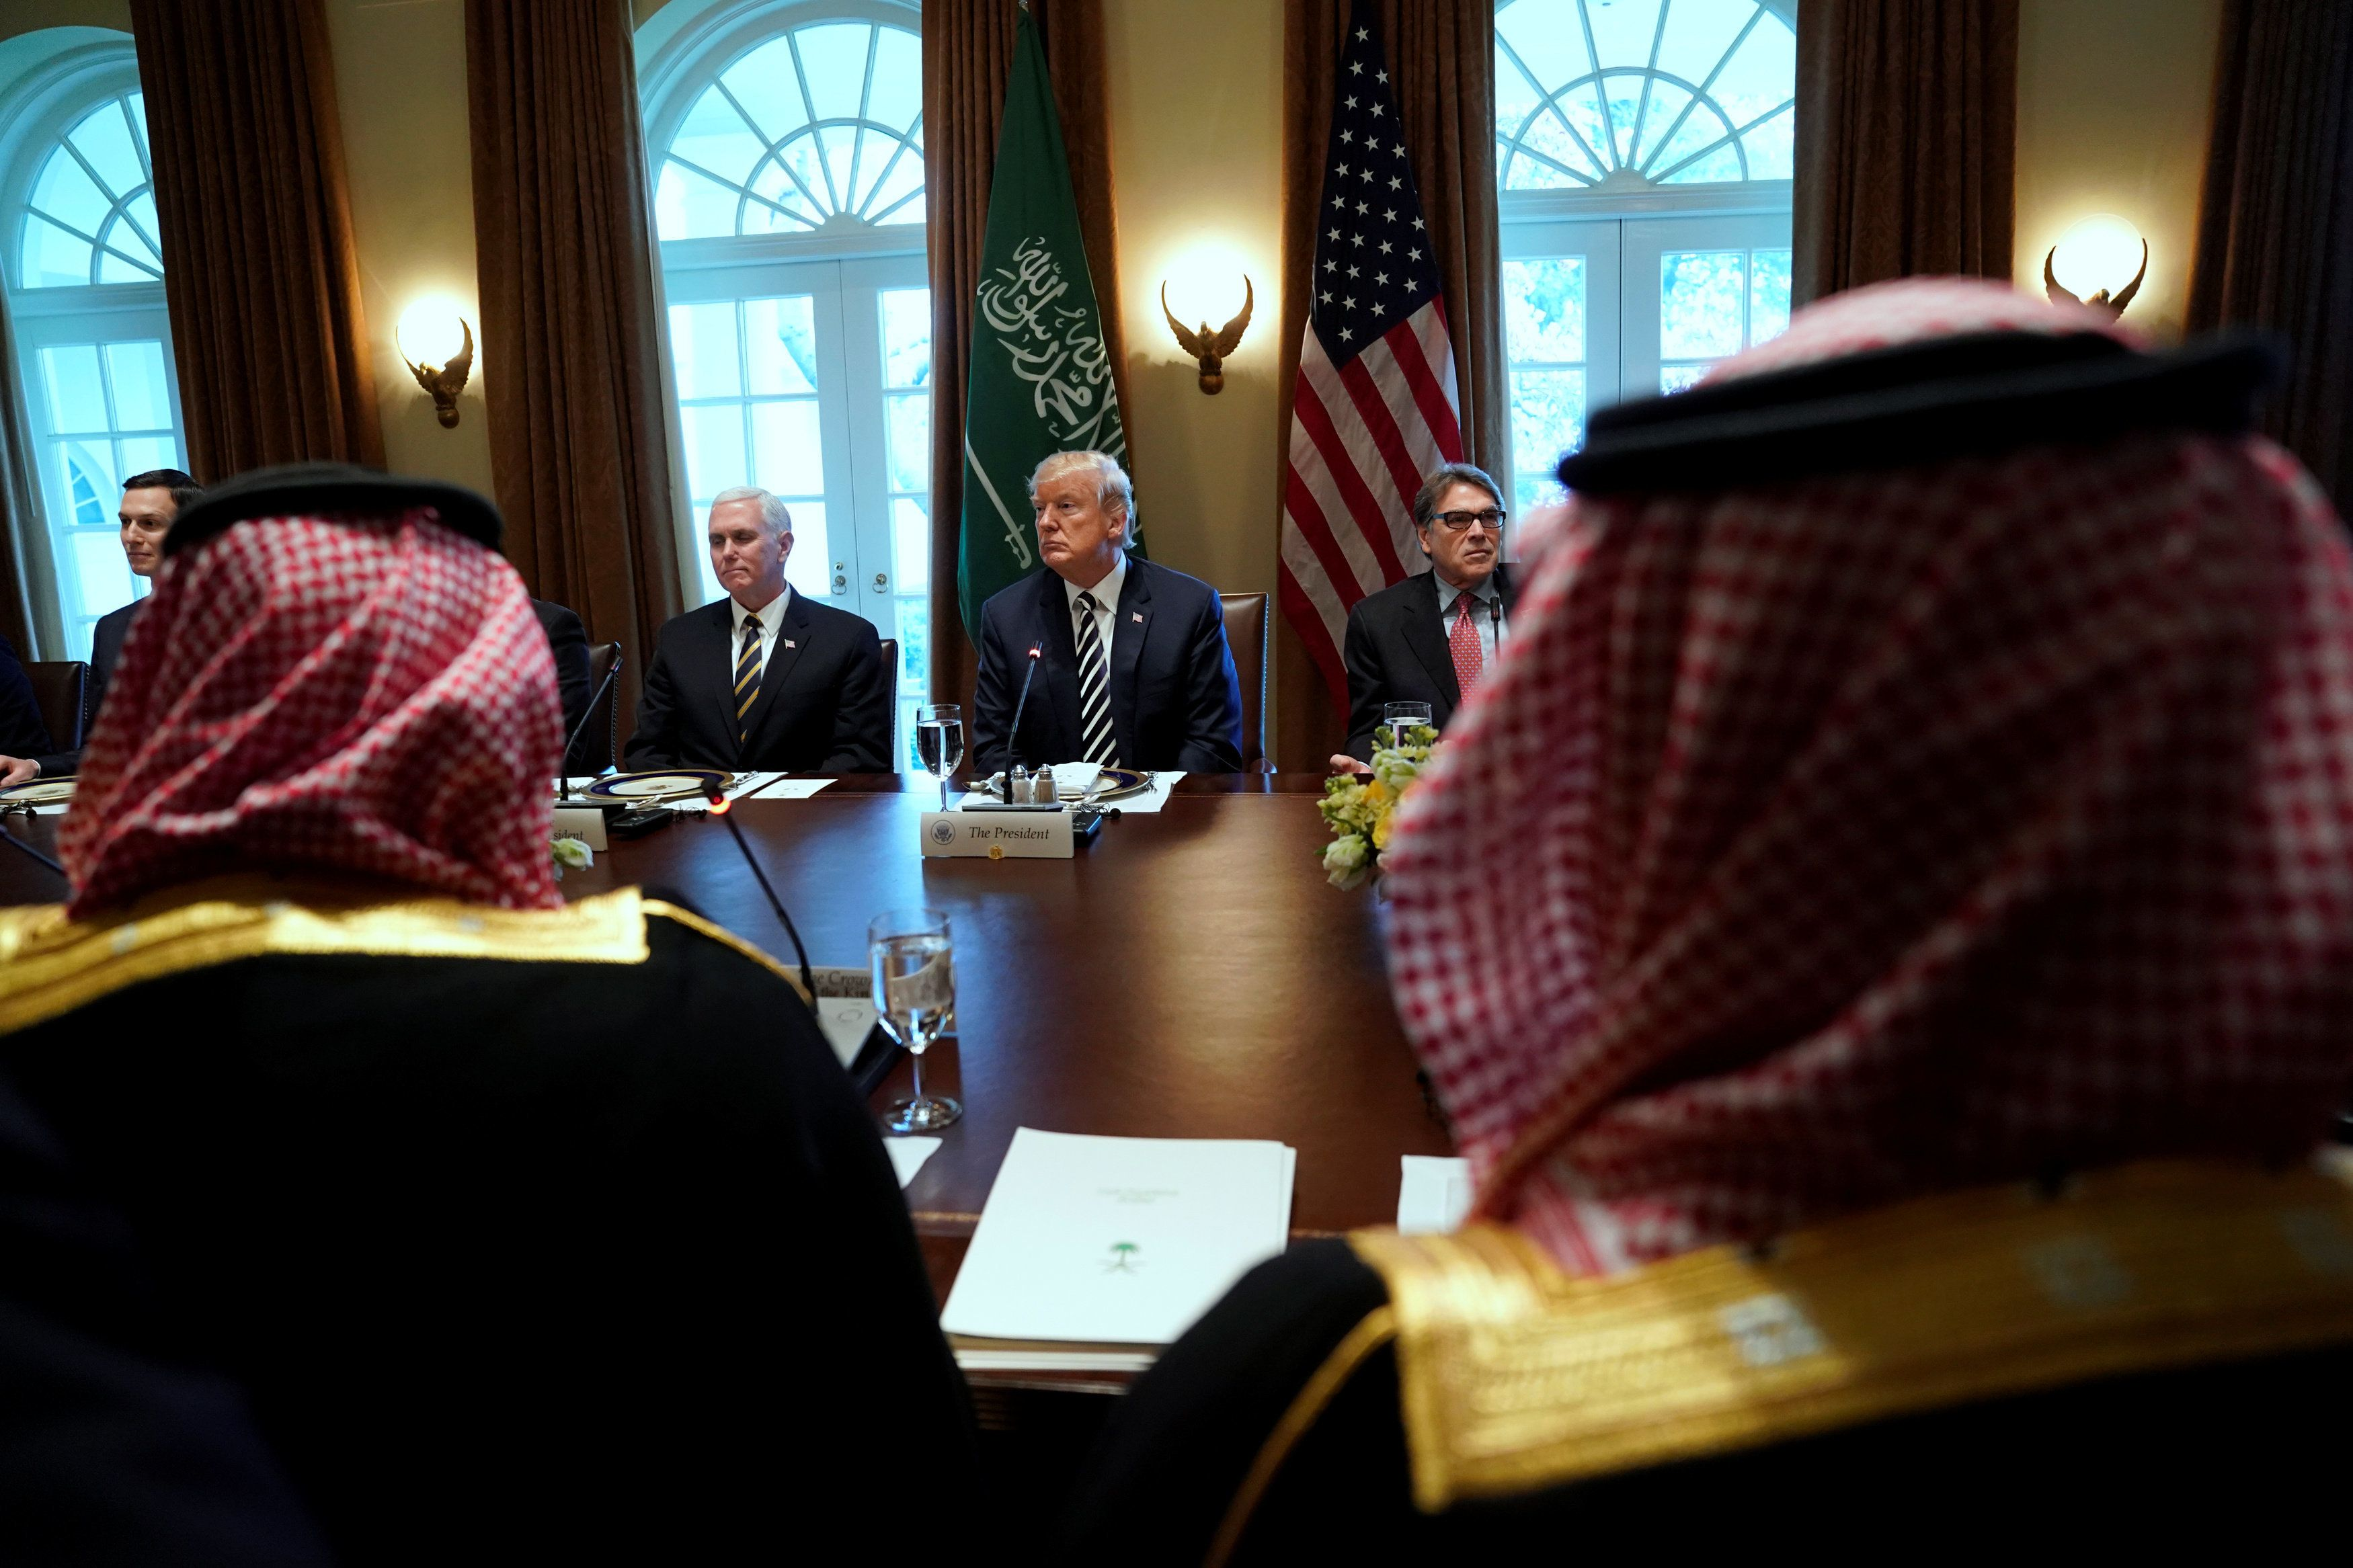 U.S. President Donald Trump, flanked by ?Vice President Mike Pence? (L) and Energy Secretary Rick Perry (R), hosts Saudi Arabia's Crown Prince Mohammed bin Salman for a working lunch at the White House in Washington, U.S. March 20, 2018.  REUTERS/Jonathan Ernst